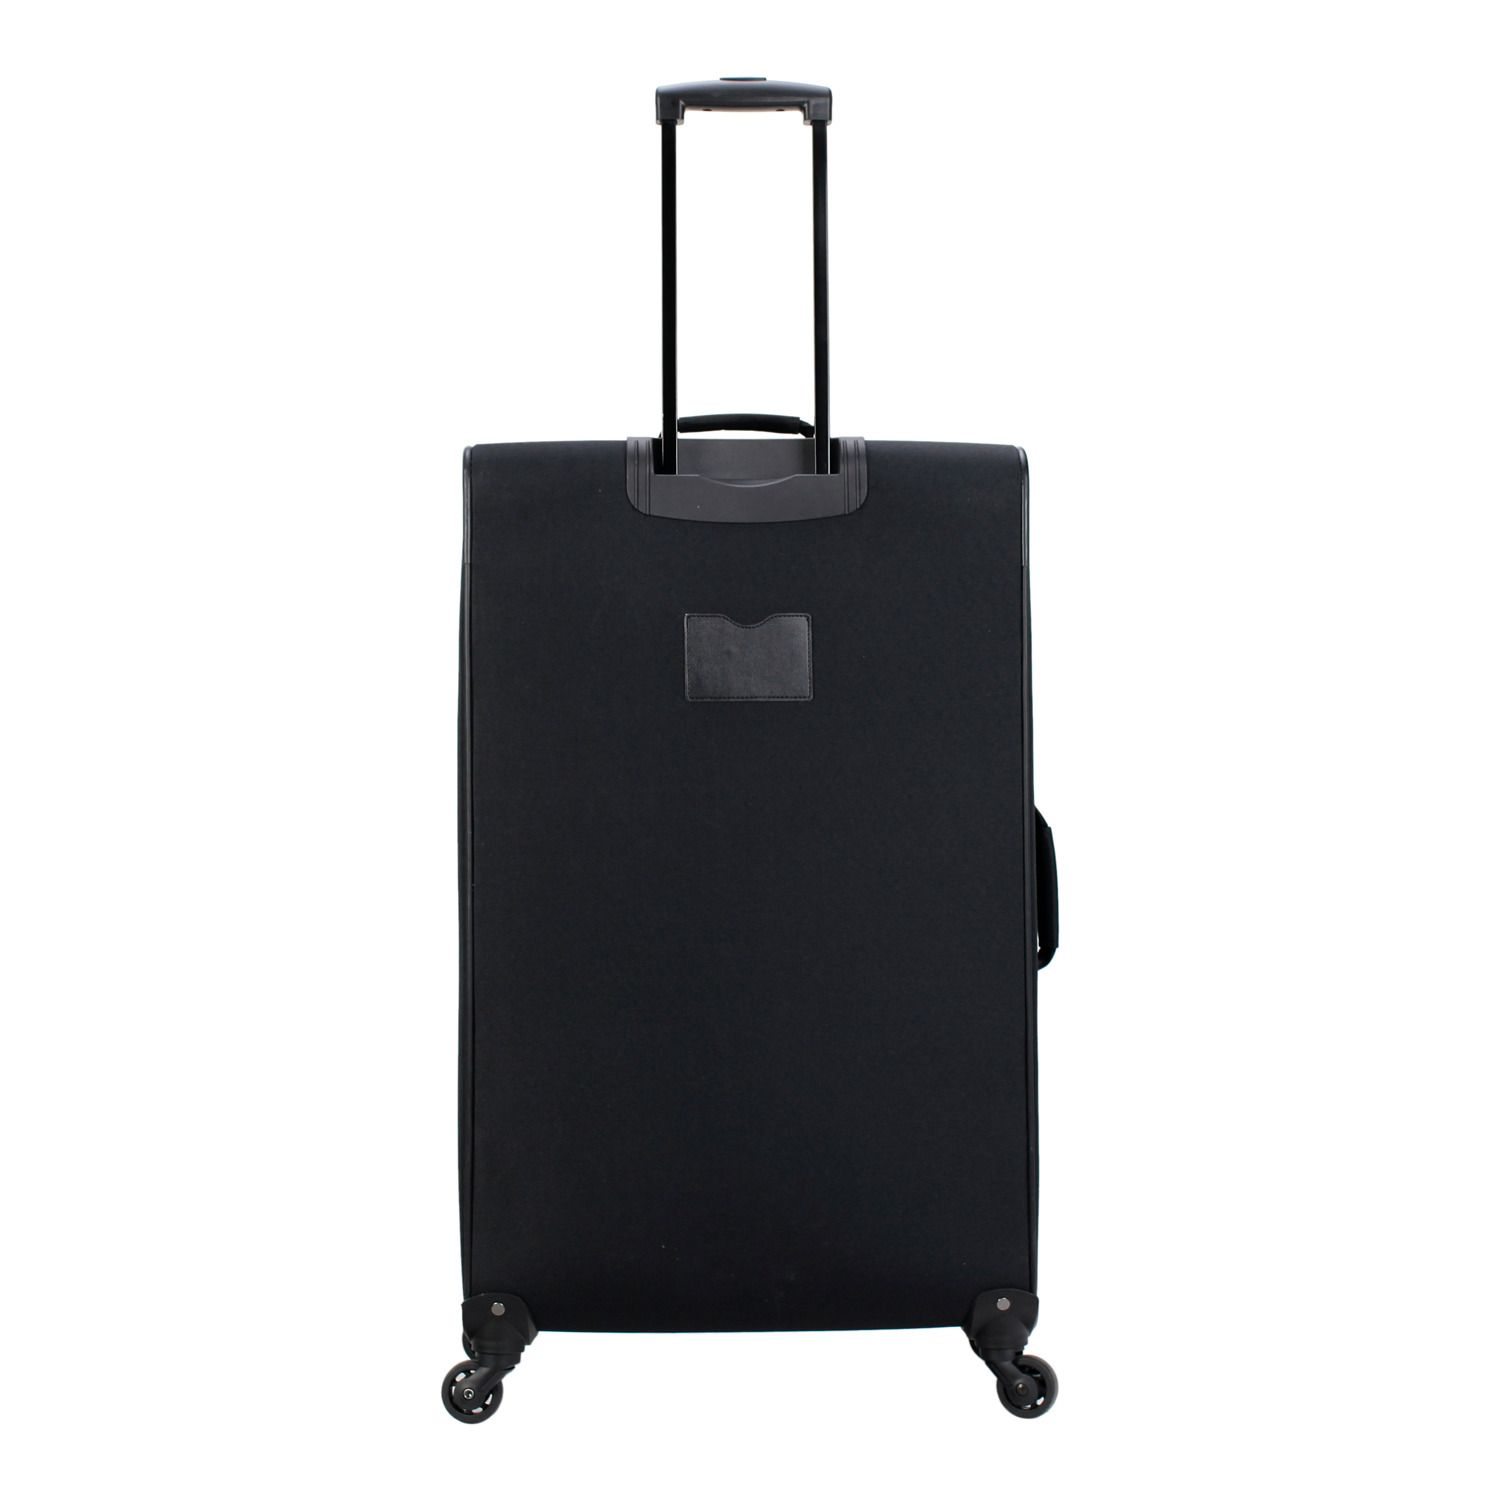 cb443871a4d9 Luggage & Suitcases | Kohl's